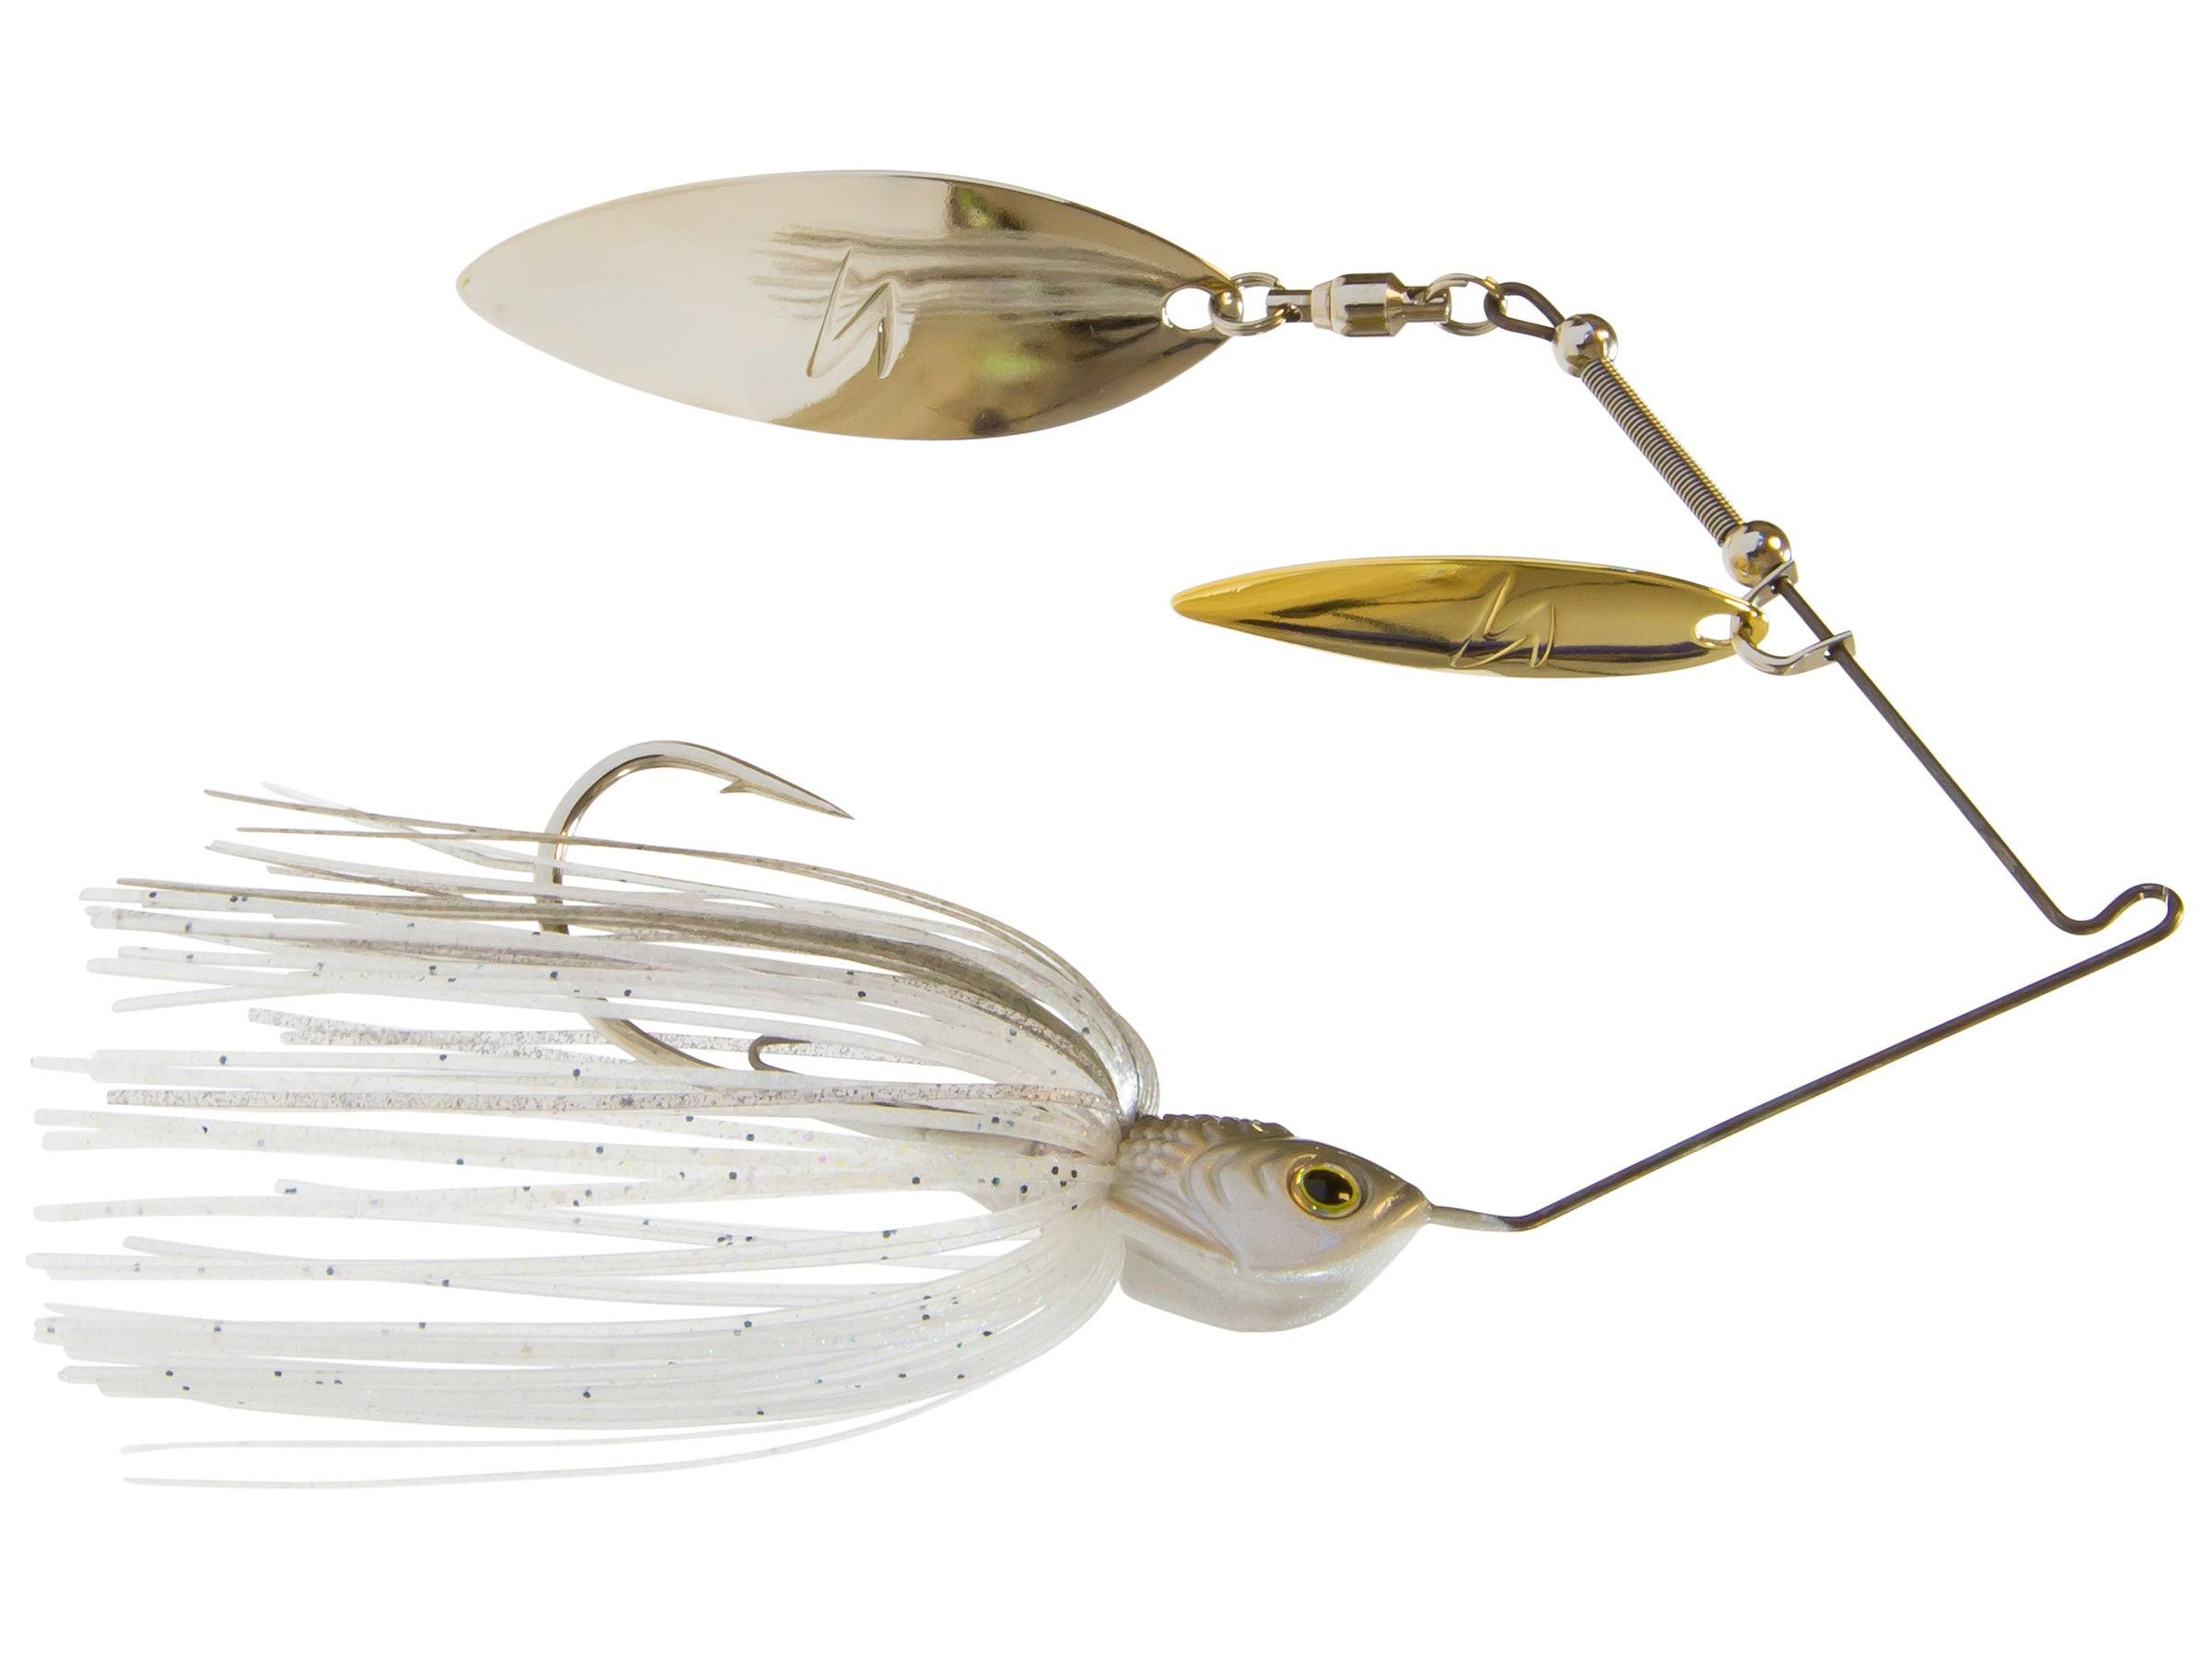 Z-Man SlingbladeZ Double Willow Spinnerbait - Clearwater Shad, 1/2oz